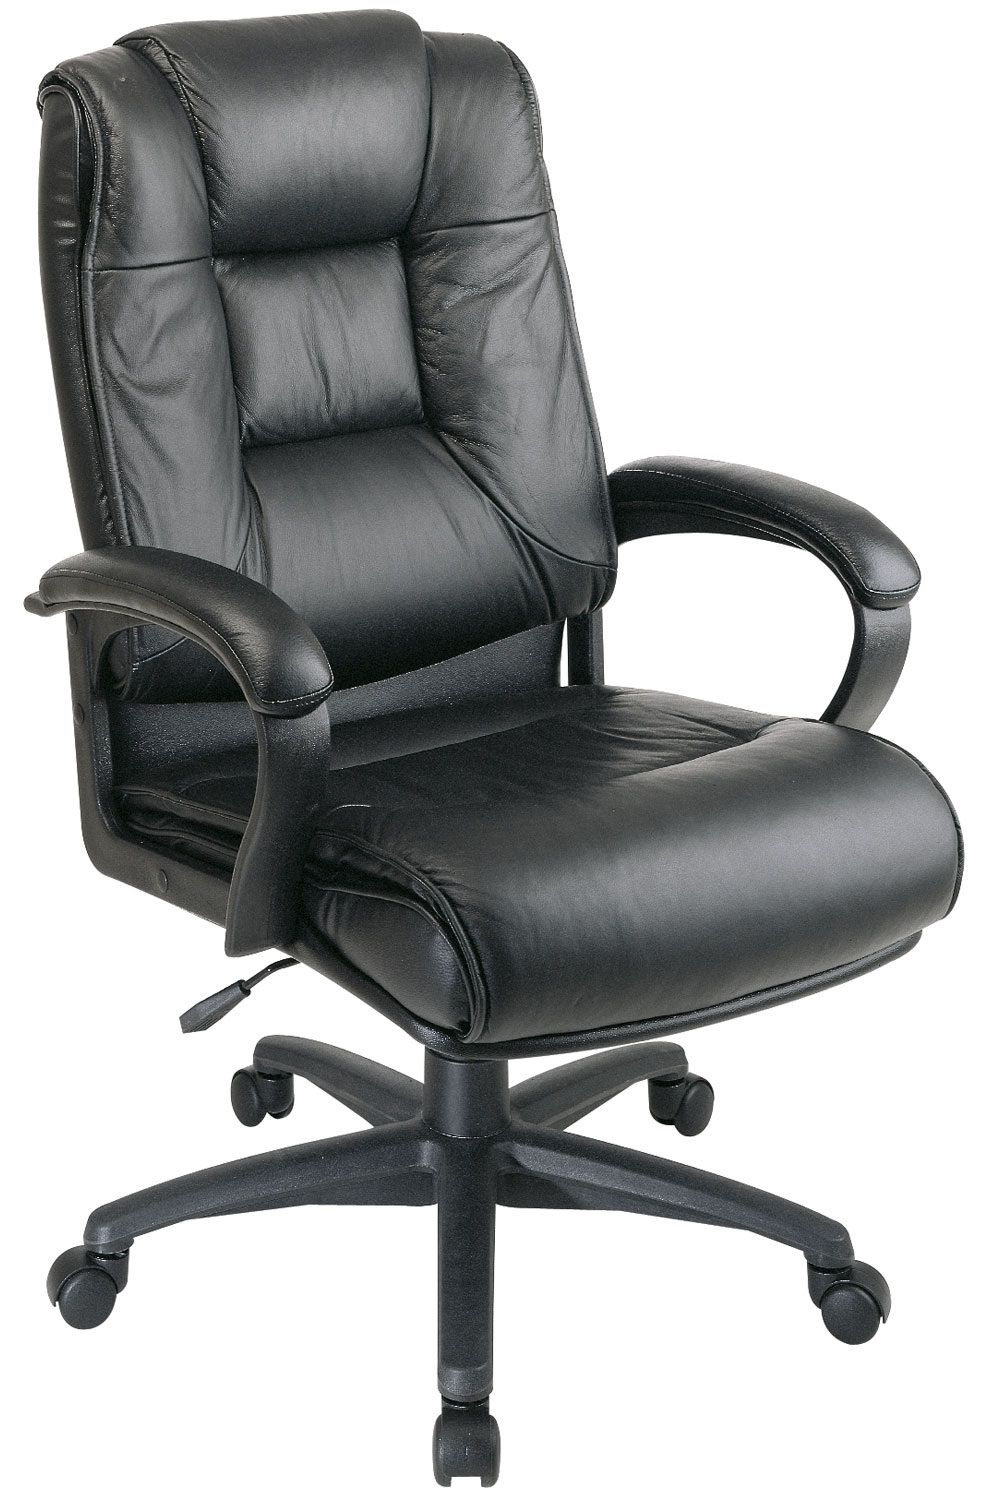 Deluxe Office Chair Used Home Furniture Check More At Http Www